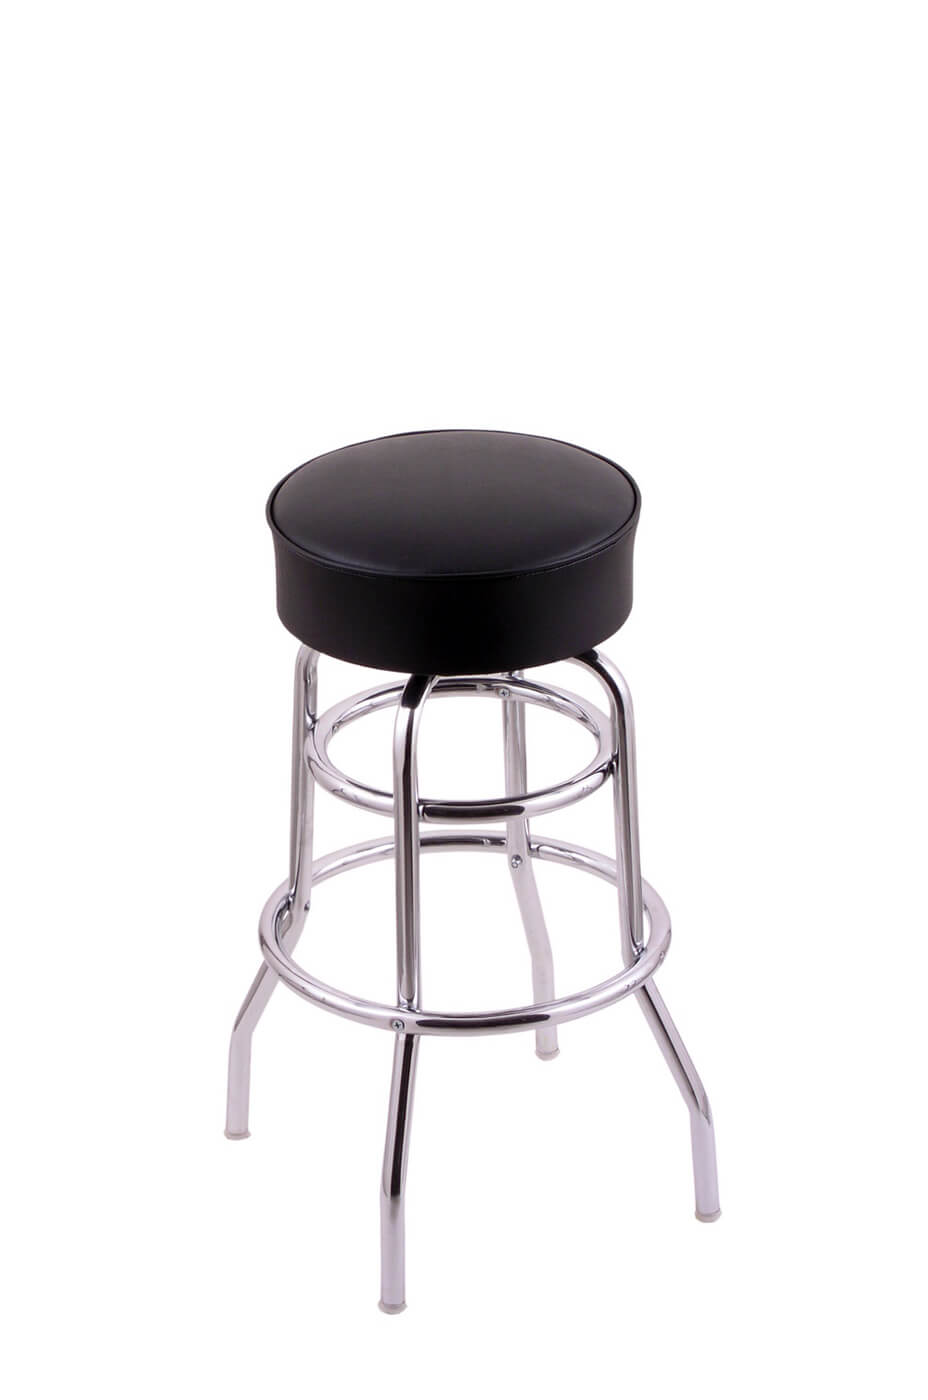 C7C1 Classic Series Backless Swivel Stool